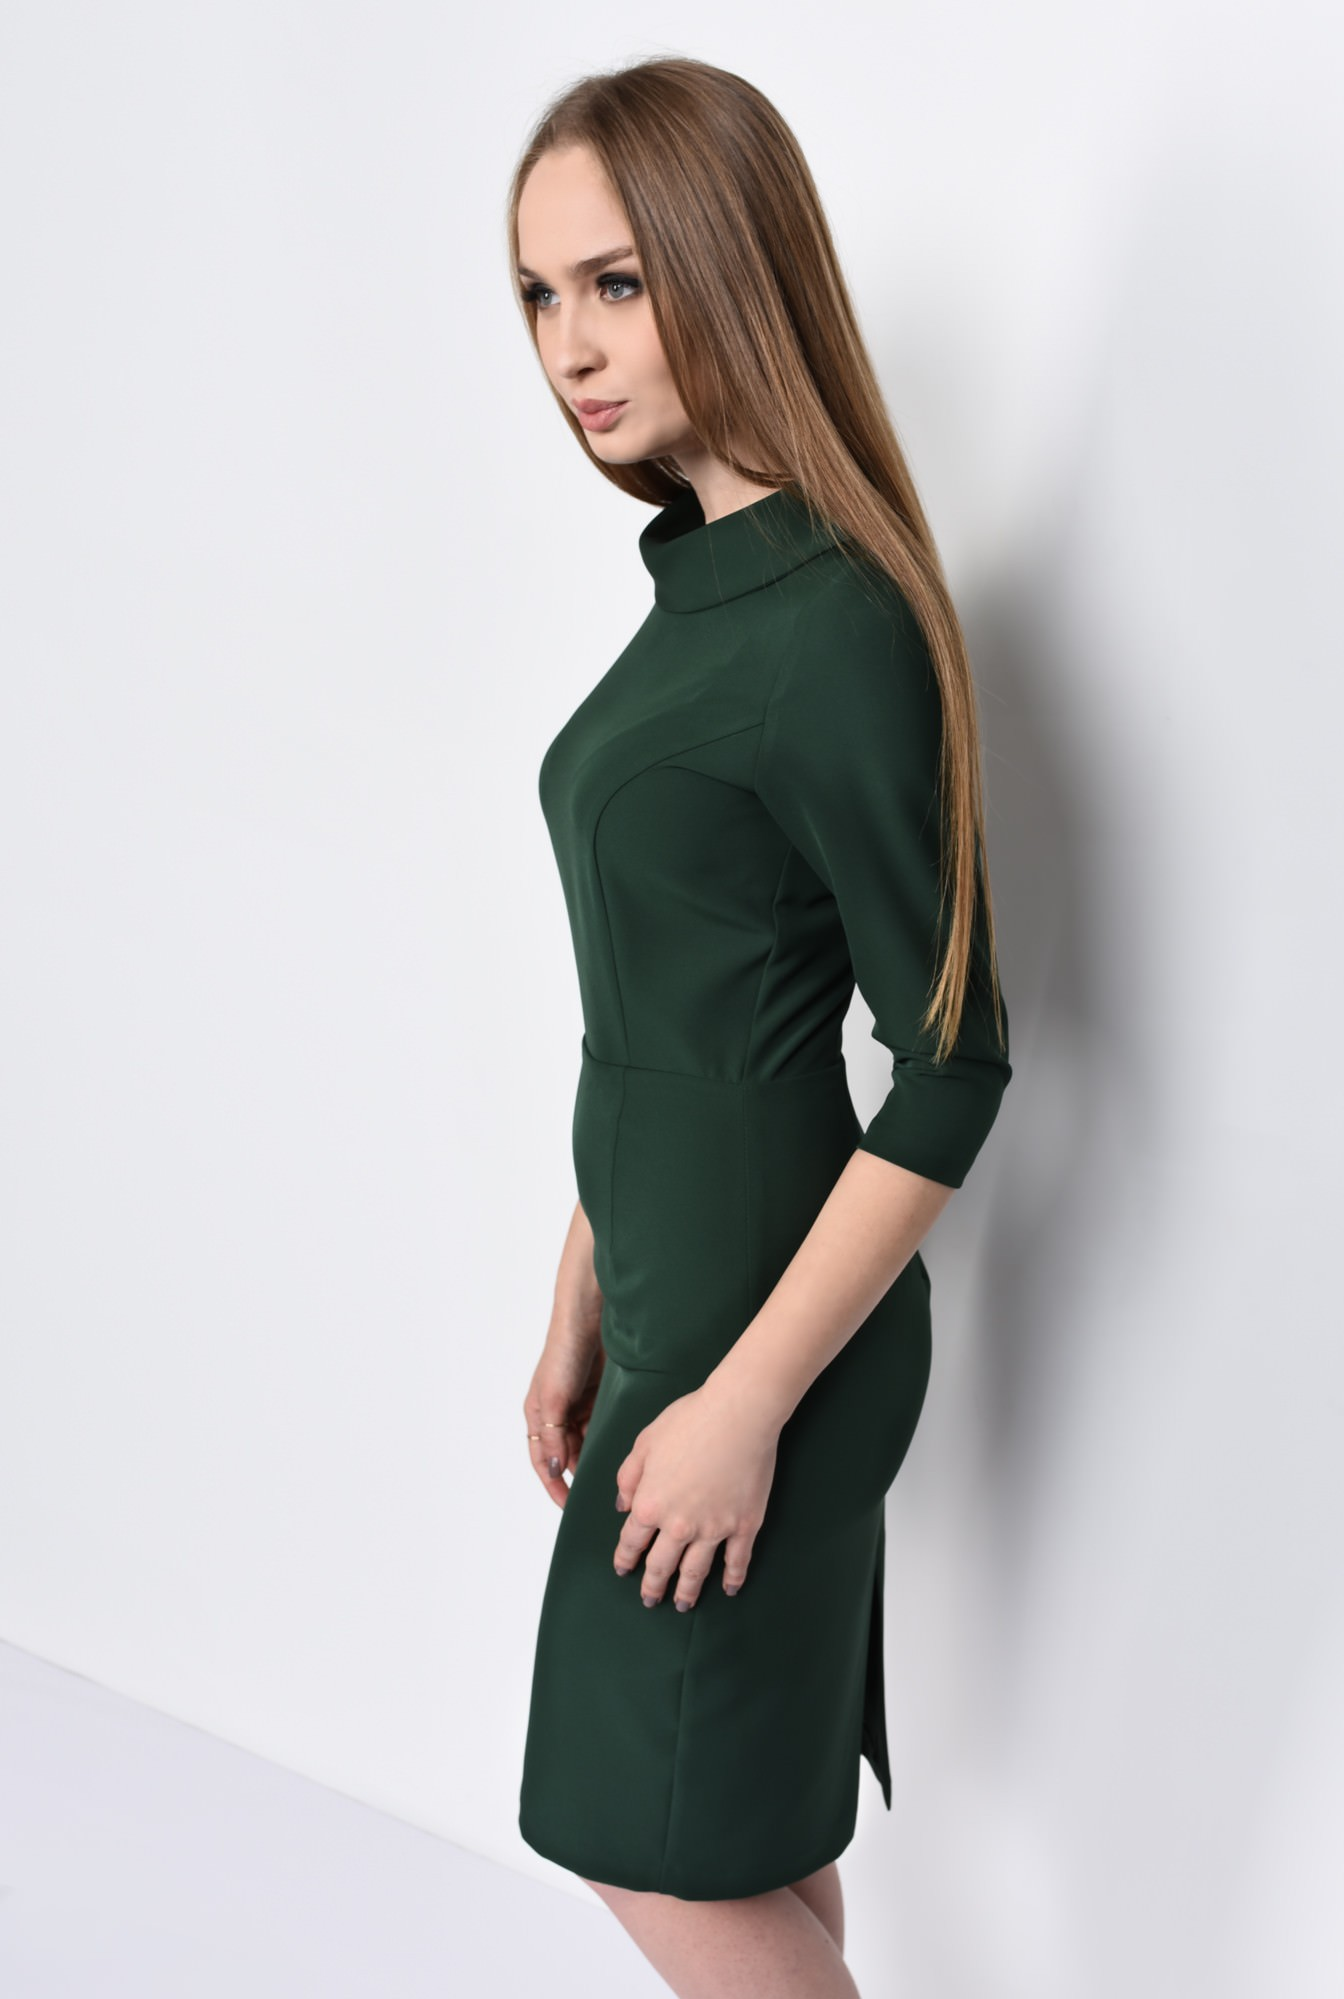 0 - ROCHIE OFFICE CONICA R 167-VERDE